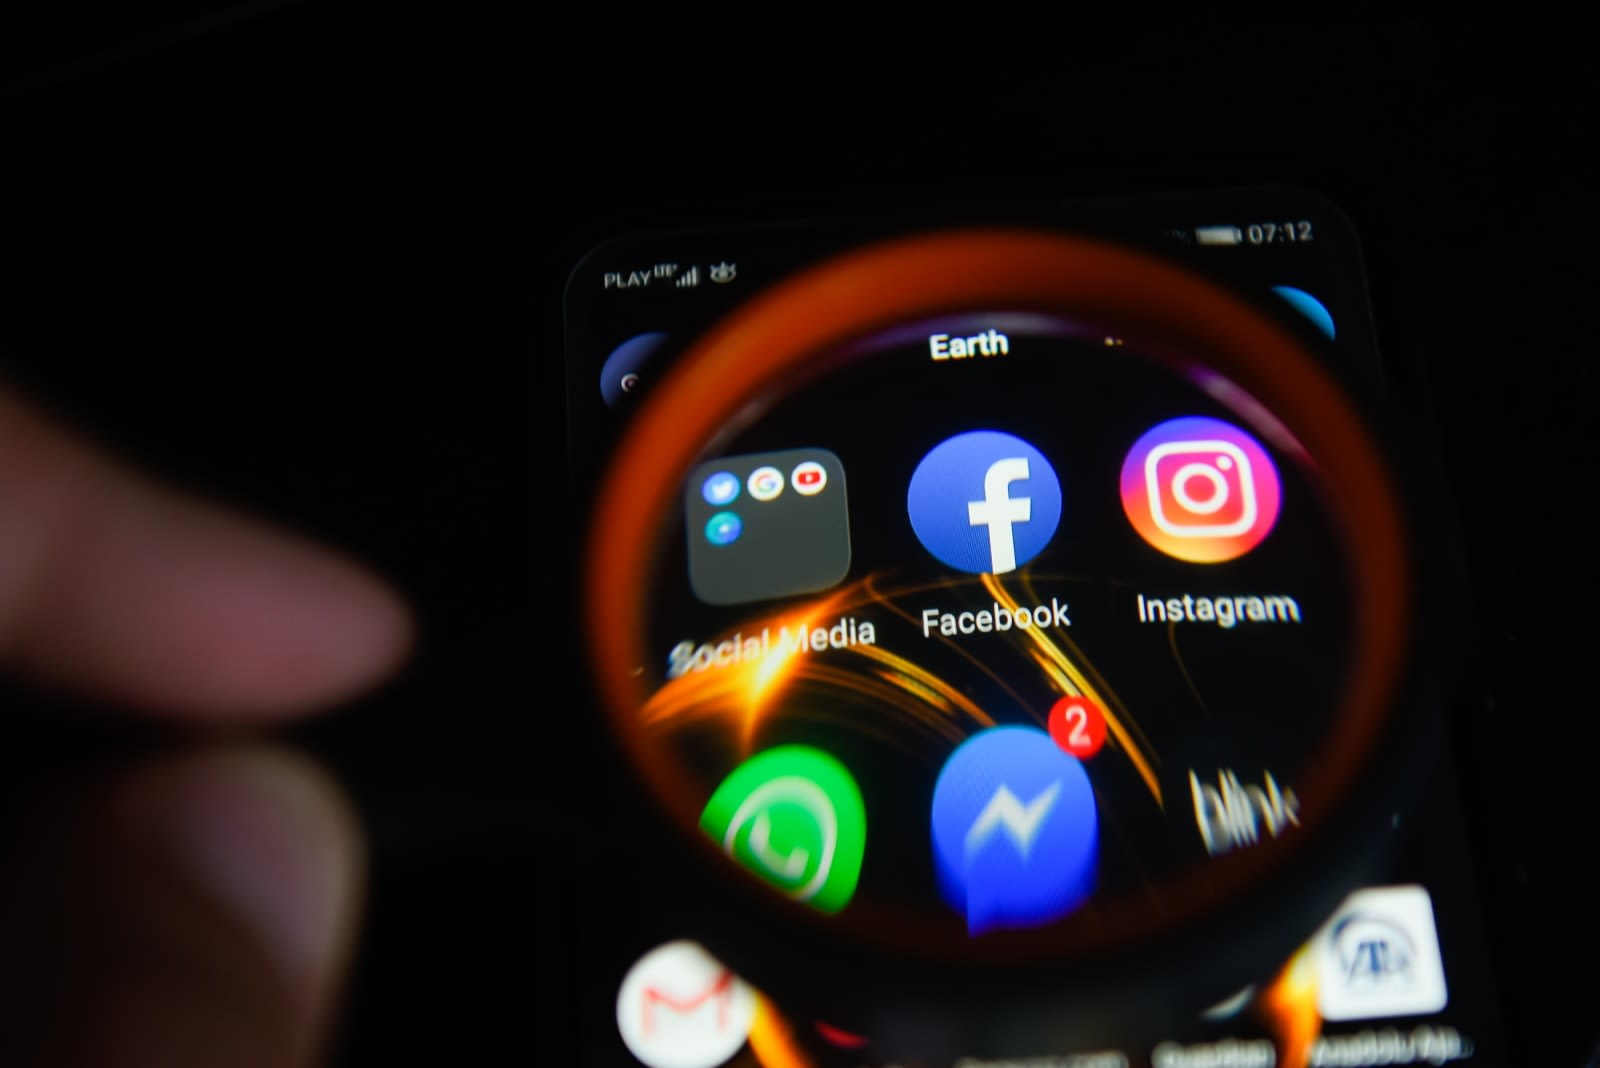 More popular apps are sending data to Facebook without asking